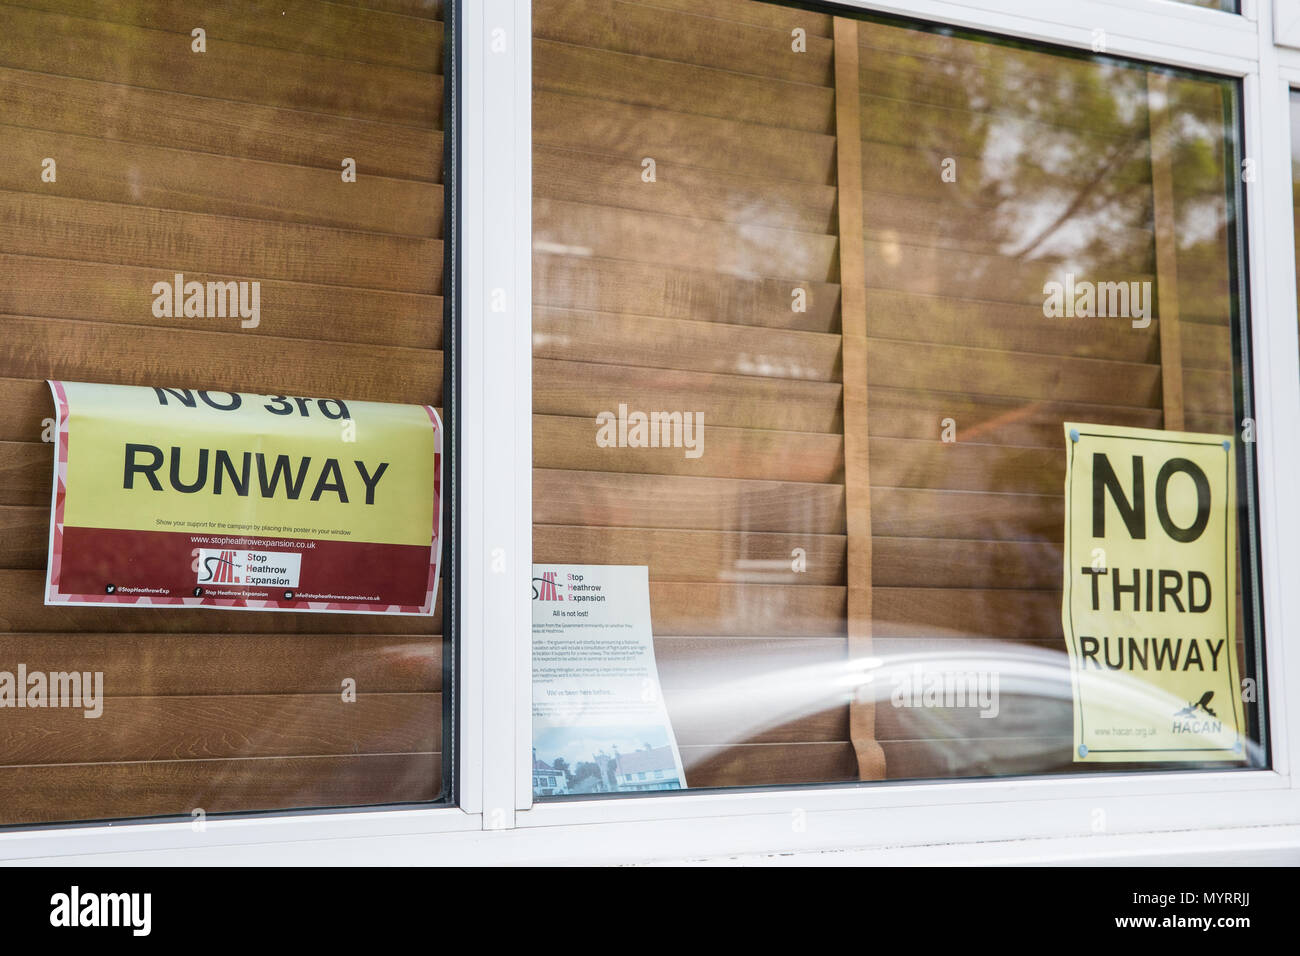 Harmondsworth, UK. 5th June, 2018. 'No Third Runway' posters in the window of a house in Harmondsworth village. - Stock Image